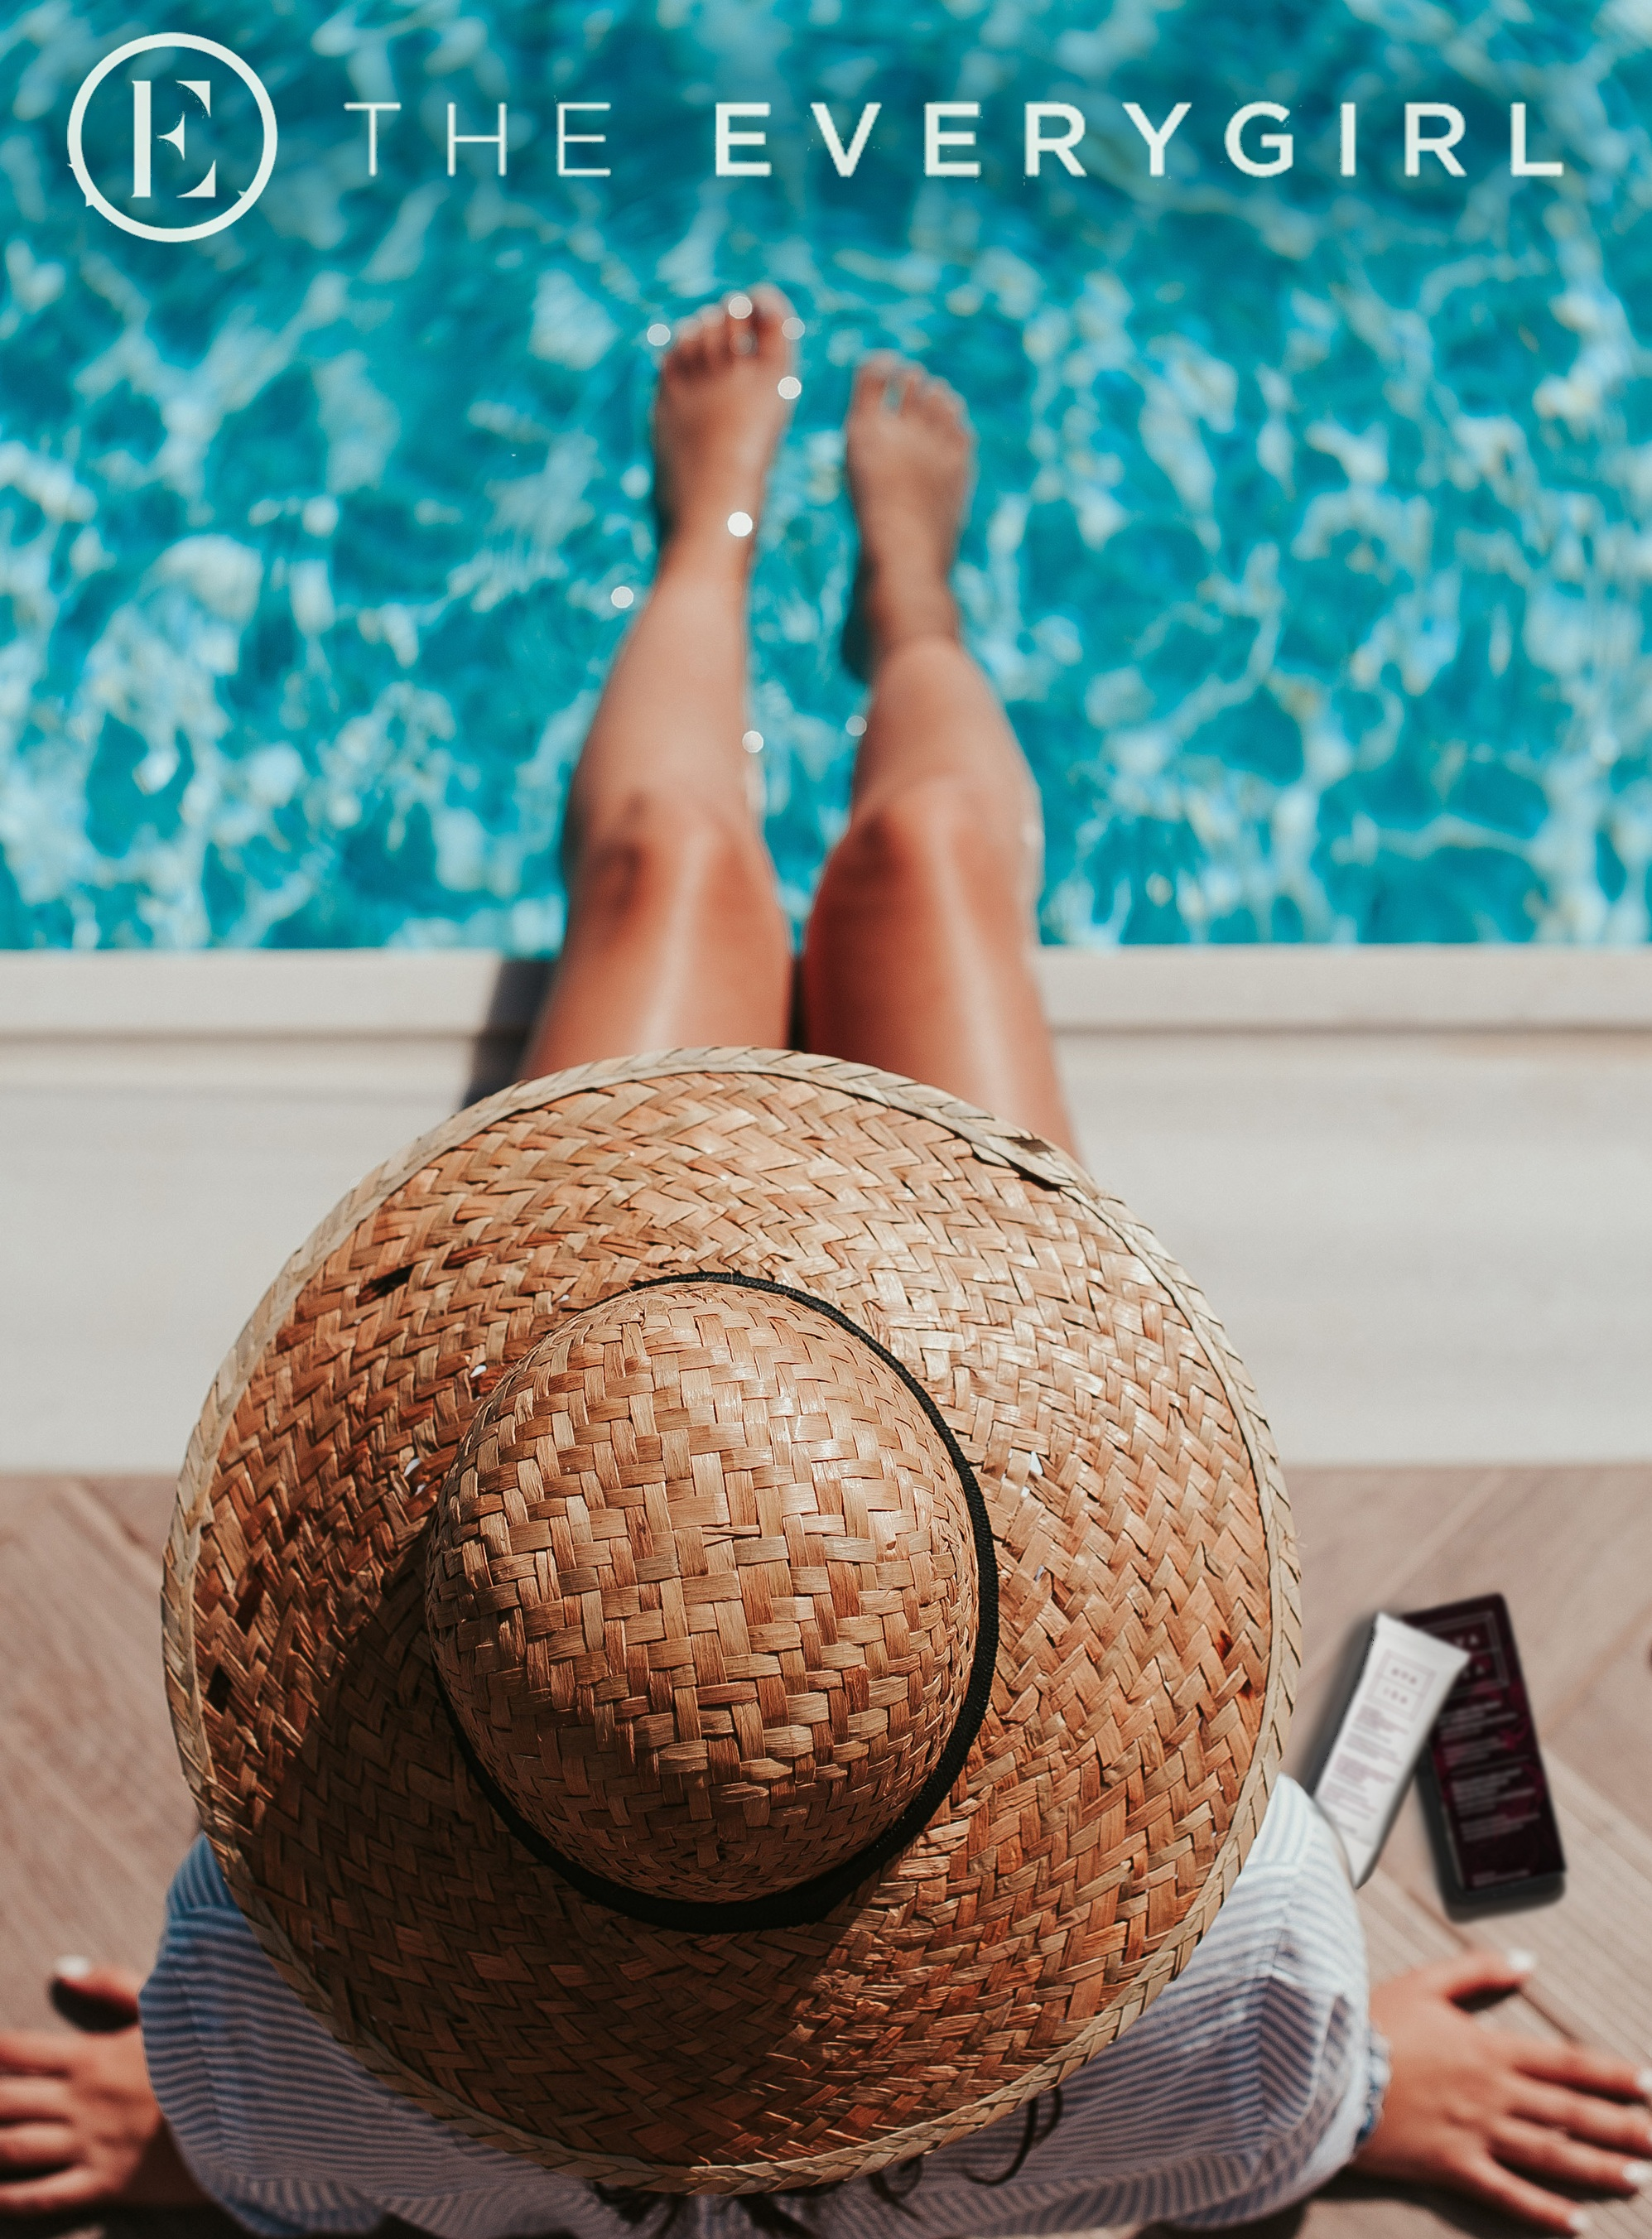 The EVERYGIRL Names The 7 Products You Need in Your Summer Beauty Rotation - EVERYGIRL names our very own Ava Isa SPF to their list for simple skincare in your summer beauty rotation.  They know SPF is the most important step in any skincare routine.